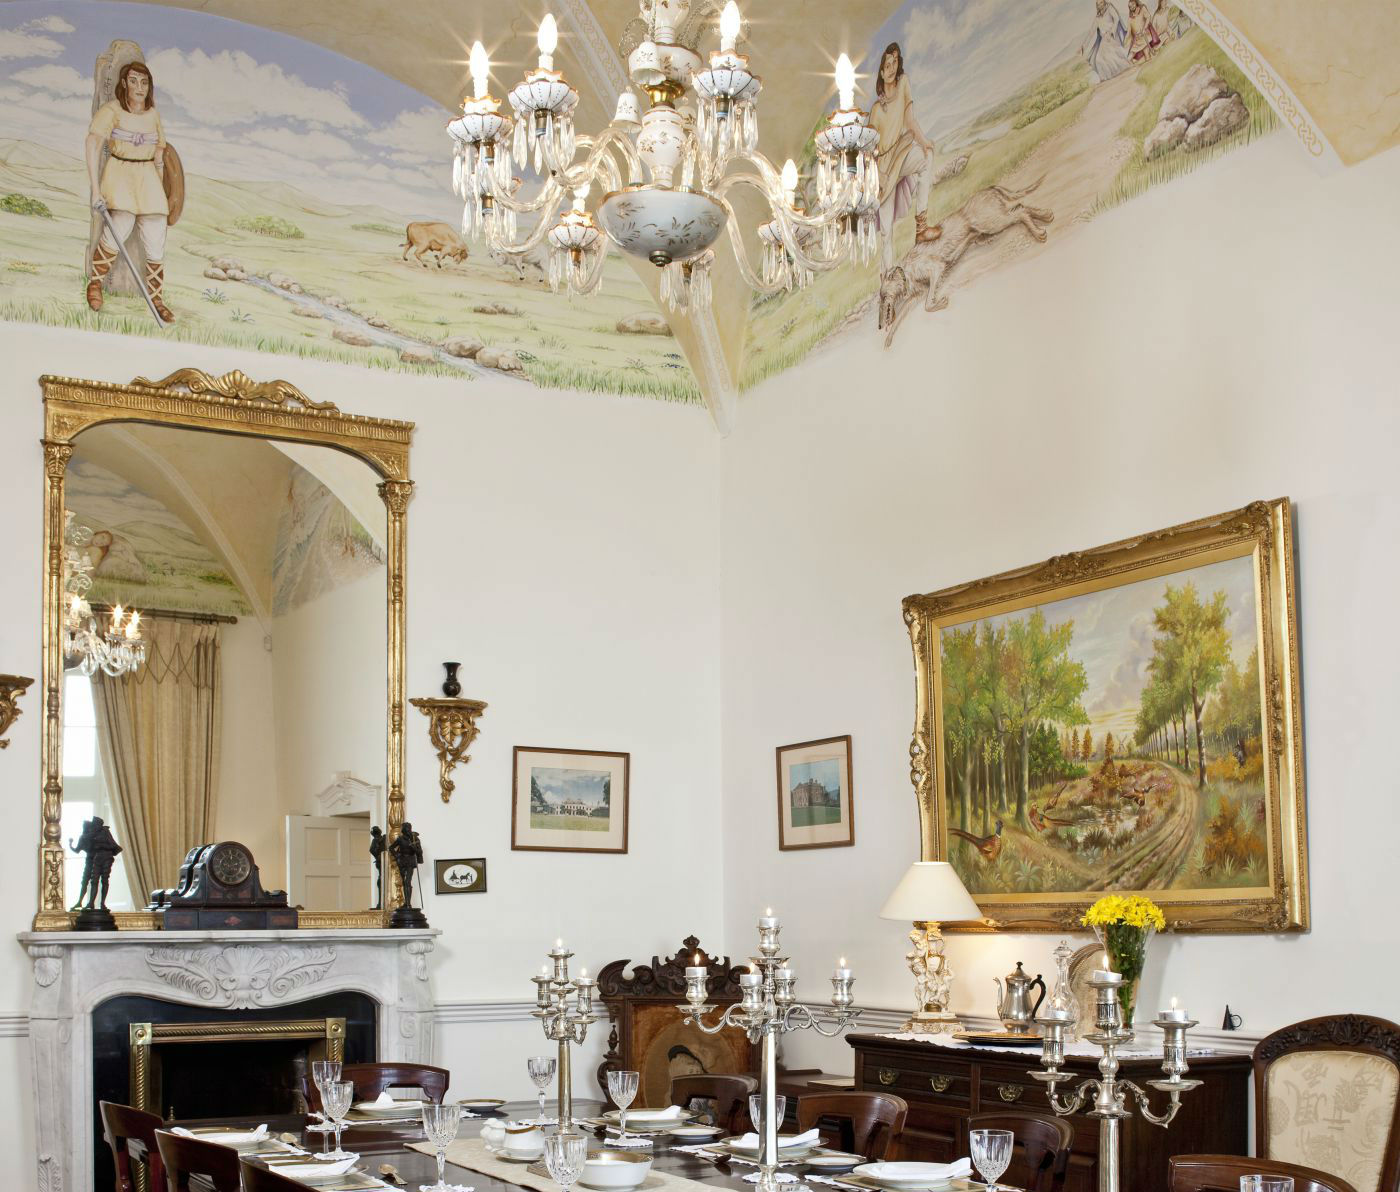 Castle Dining Room - luxury restored castle